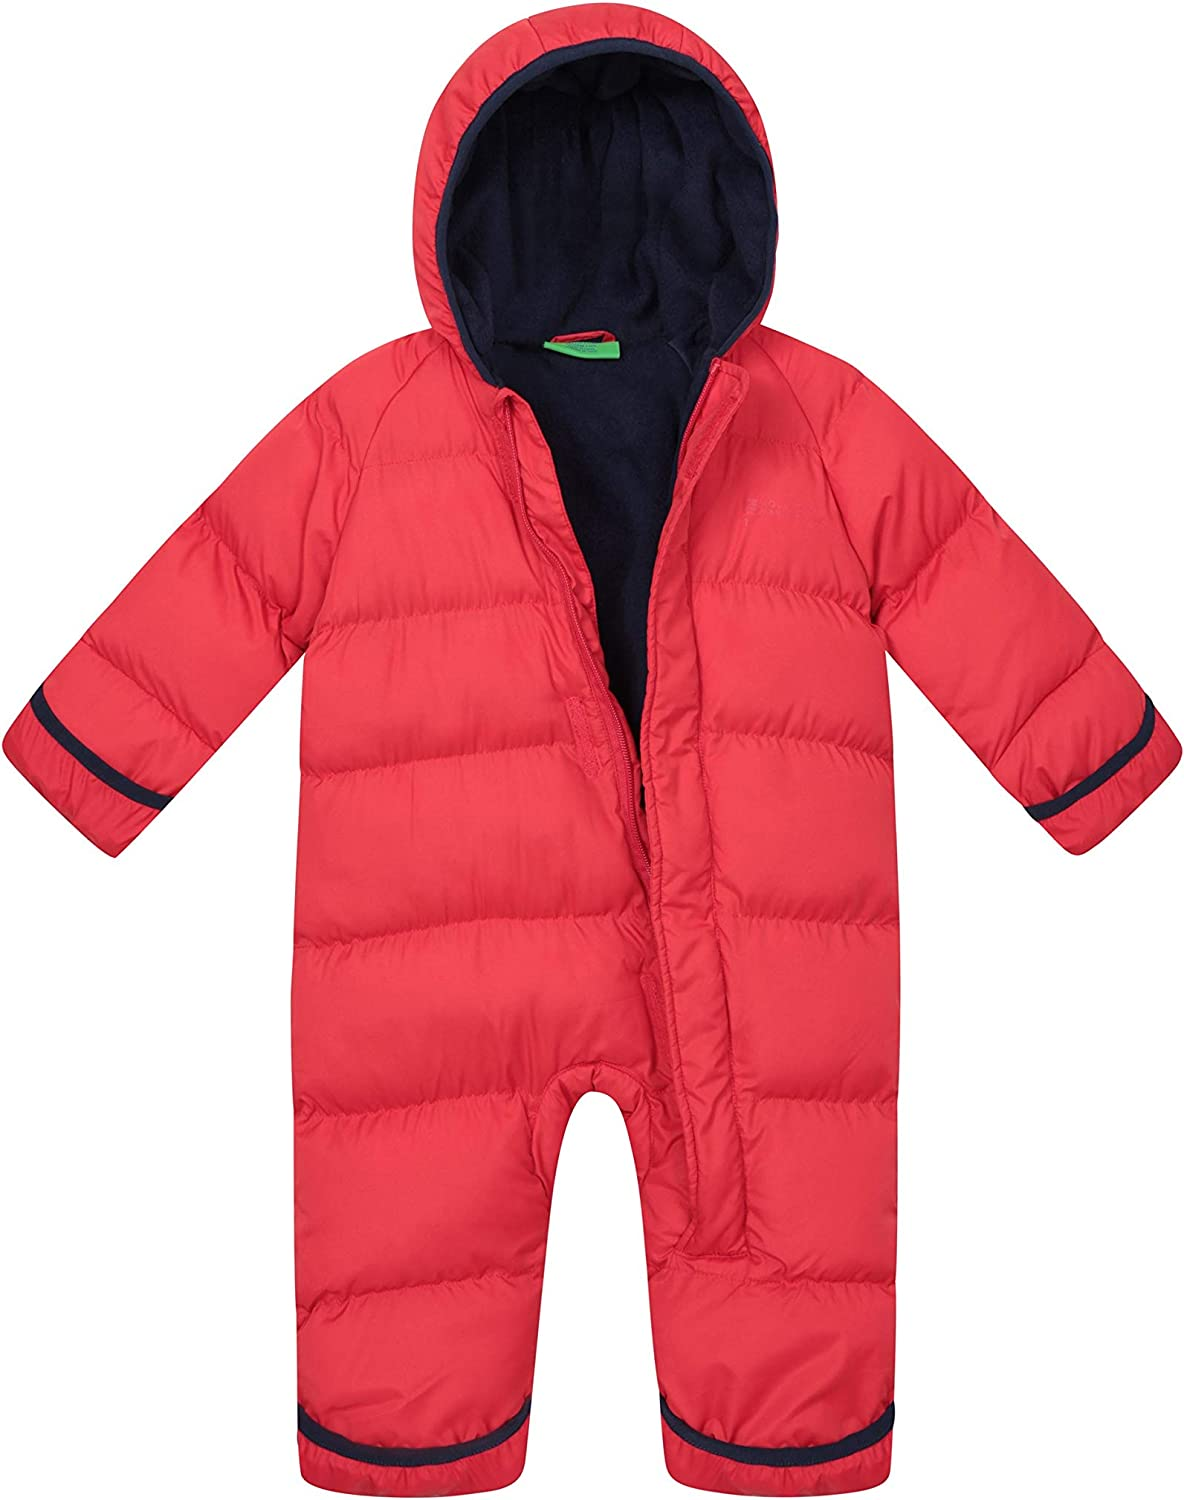 Fleece Lining Childrens Snowsuit Foot Cuffs Hand Mountain Warehouse Frosty Junior Padded Suit Hoodie Ideal for Winter Holidays Central Zip